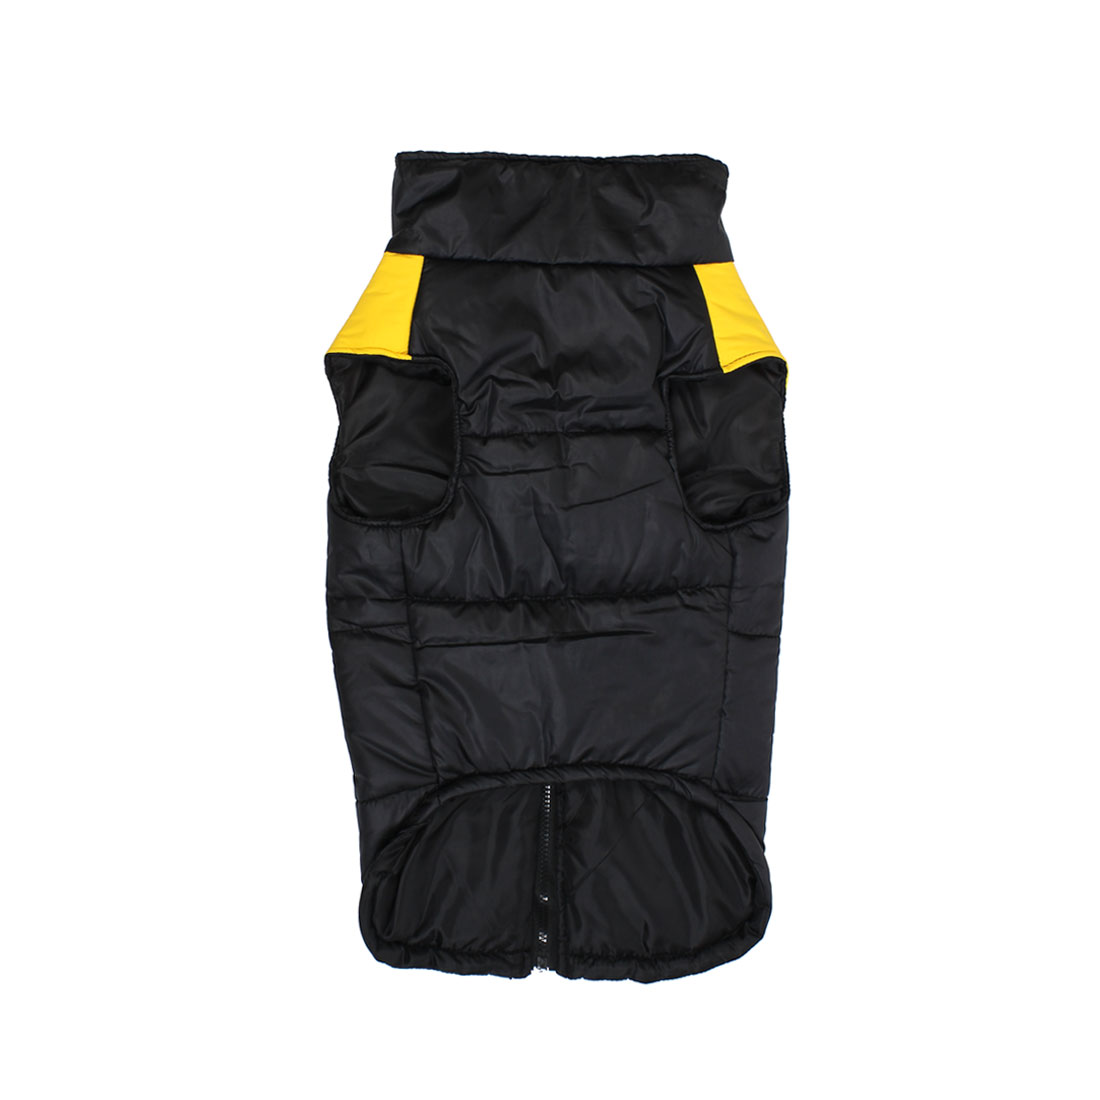 Pet Dog Puppy Jacket Winter Coat Clothes Warm Vest Apparel Yellow Size 3XL